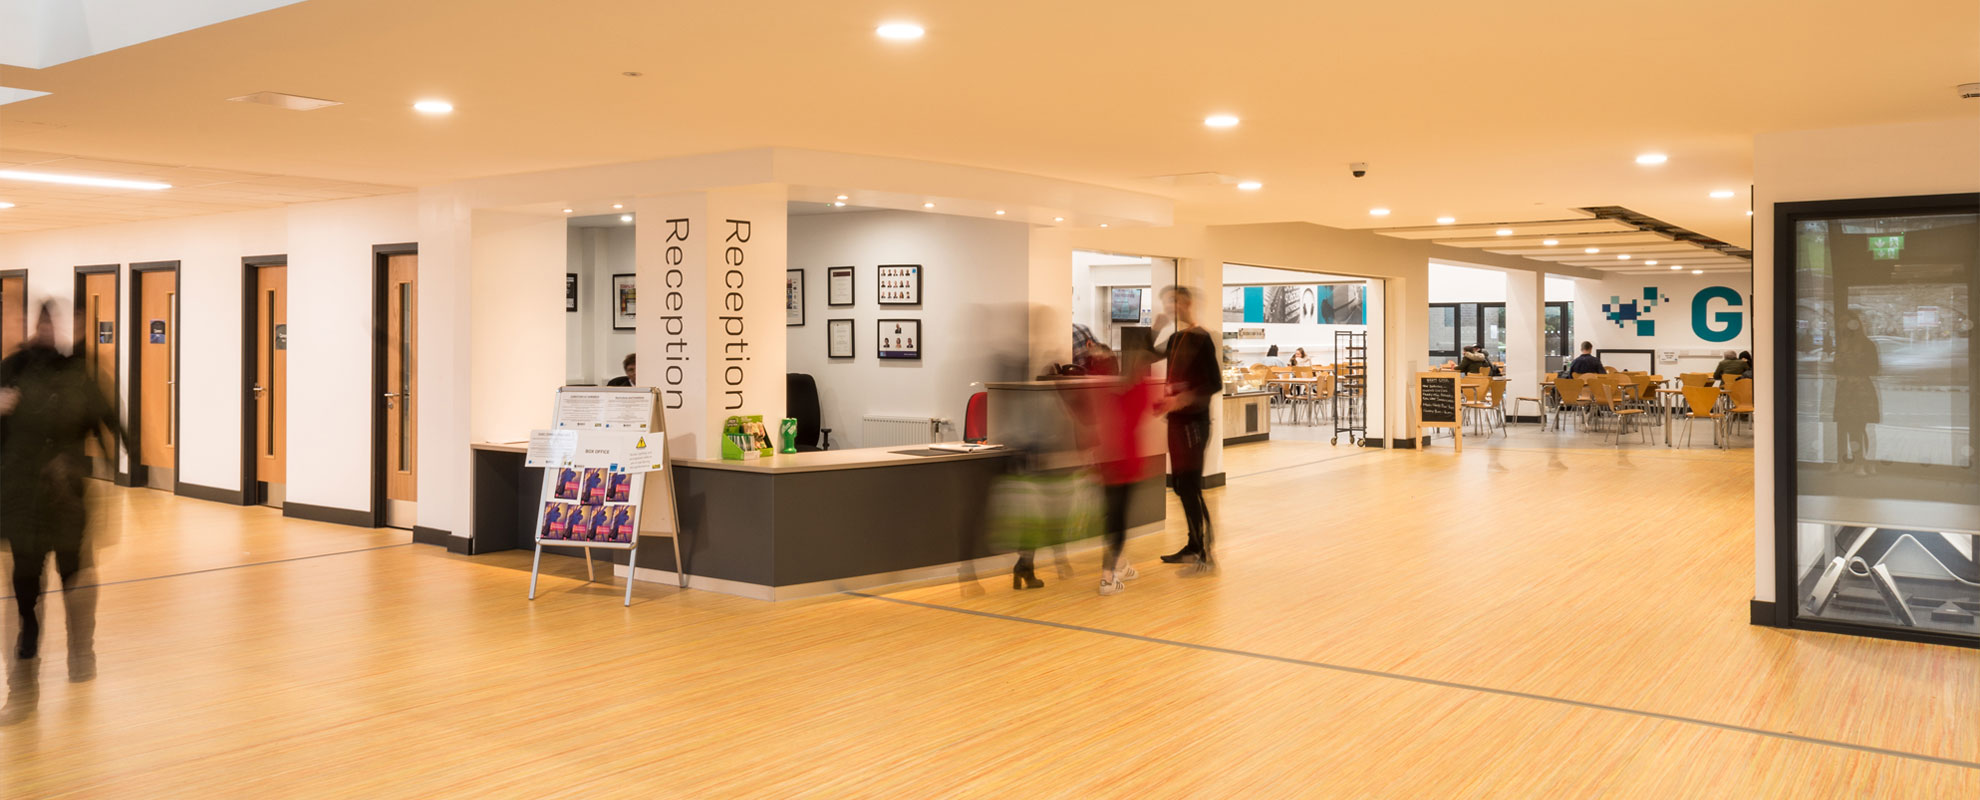 ADG Architects Design Group Architecture Design Graphics Studio 5-11 Millbay Road Plymouth